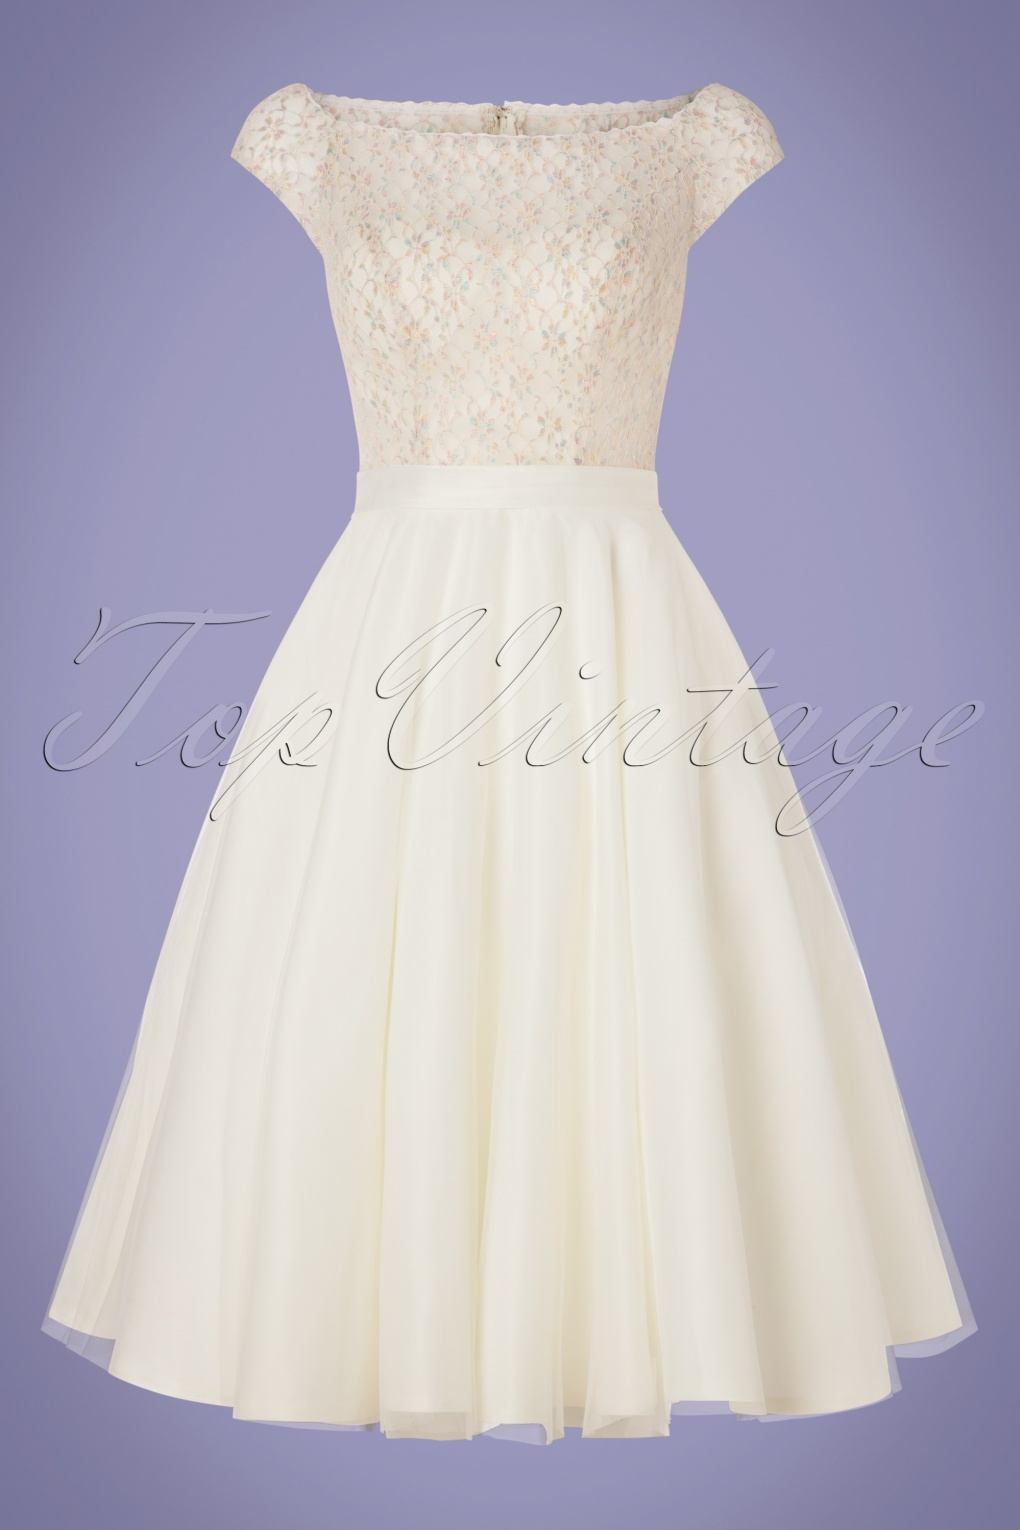 1960s Style Dresses, Clothing, Shoes UK 50s Verity Multi Lace Bridal Gown in Ivory White £136.21 AT vintagedancer.com